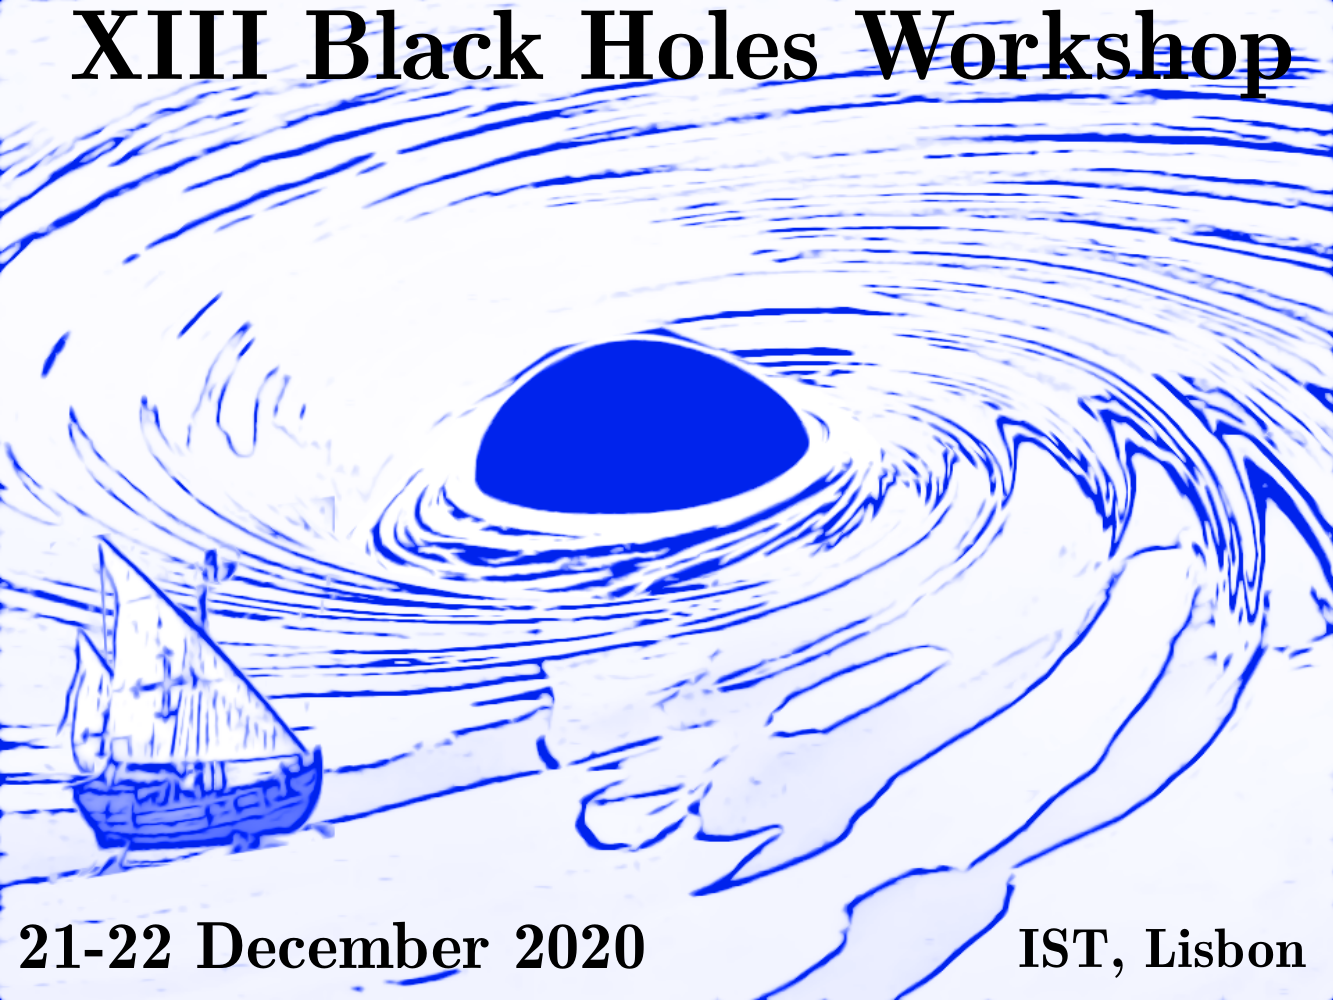 XIII Black Holes Workshop in Lisbon, 21 and 22 December 2020